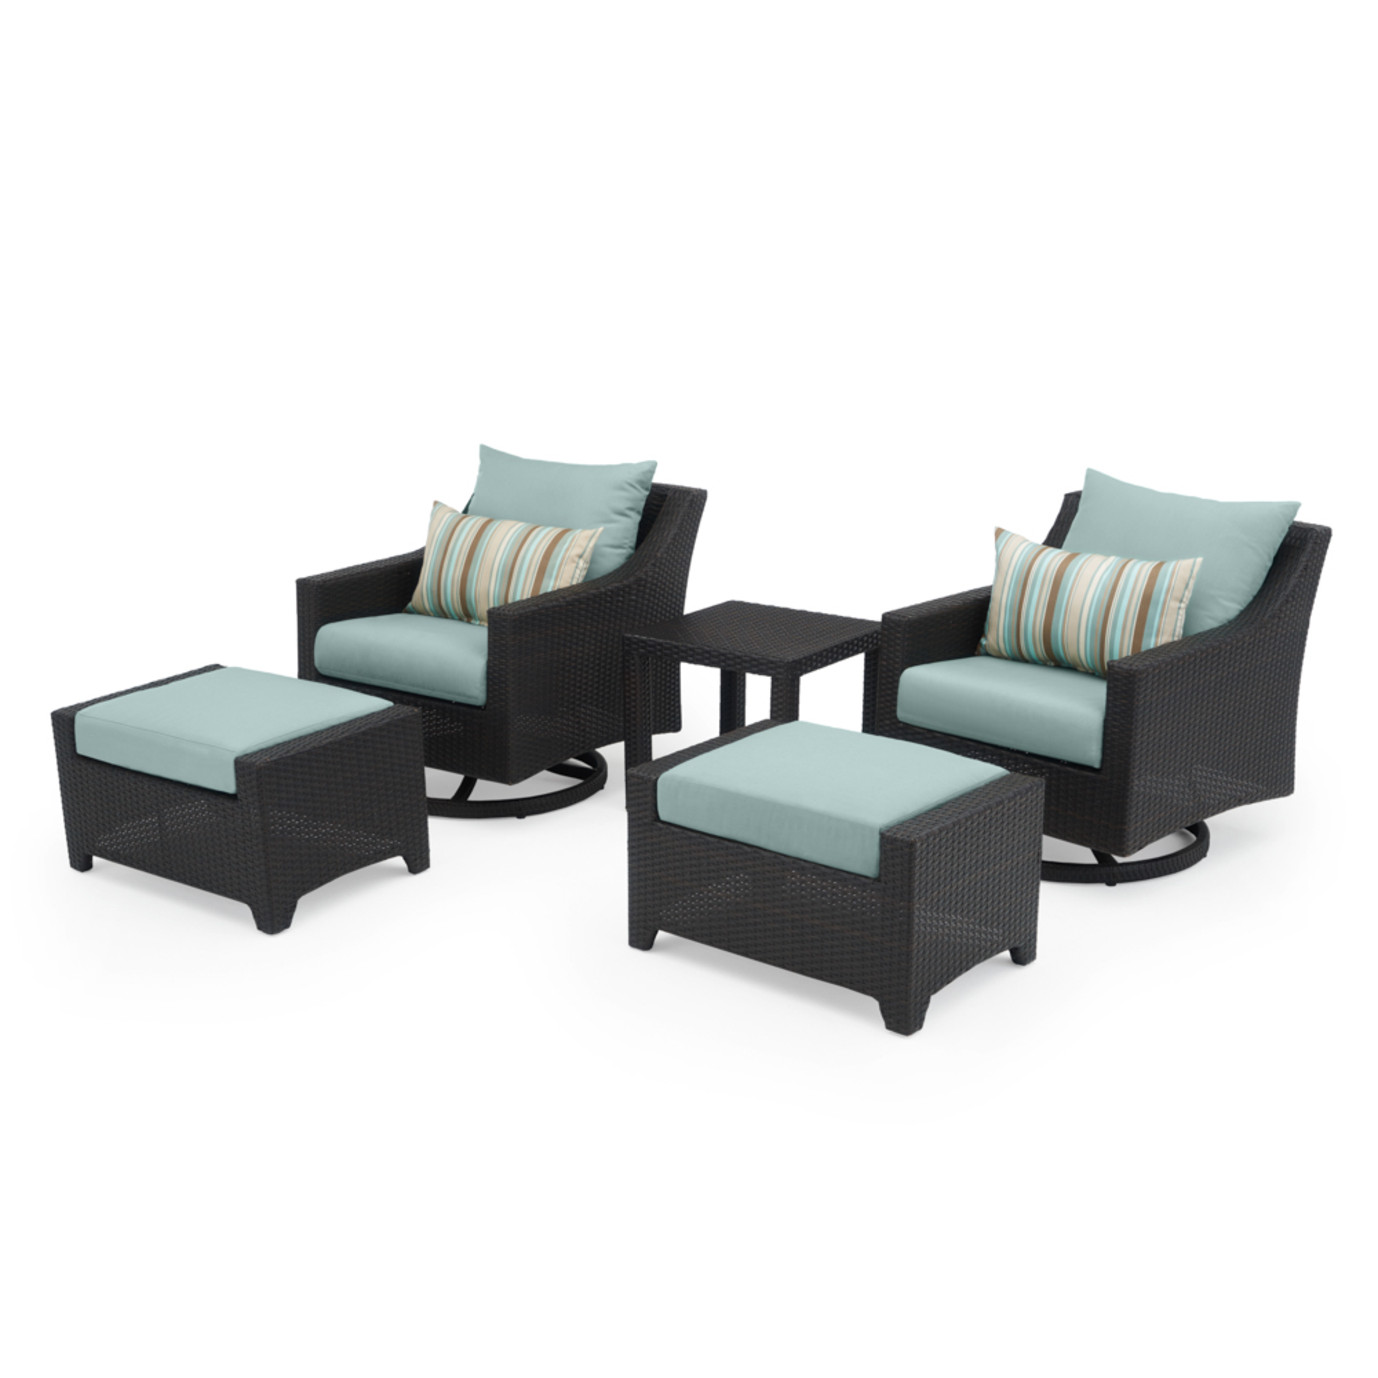 Deco™ 5 Piece Motion Club & Ottoman Set - Bliss Blue